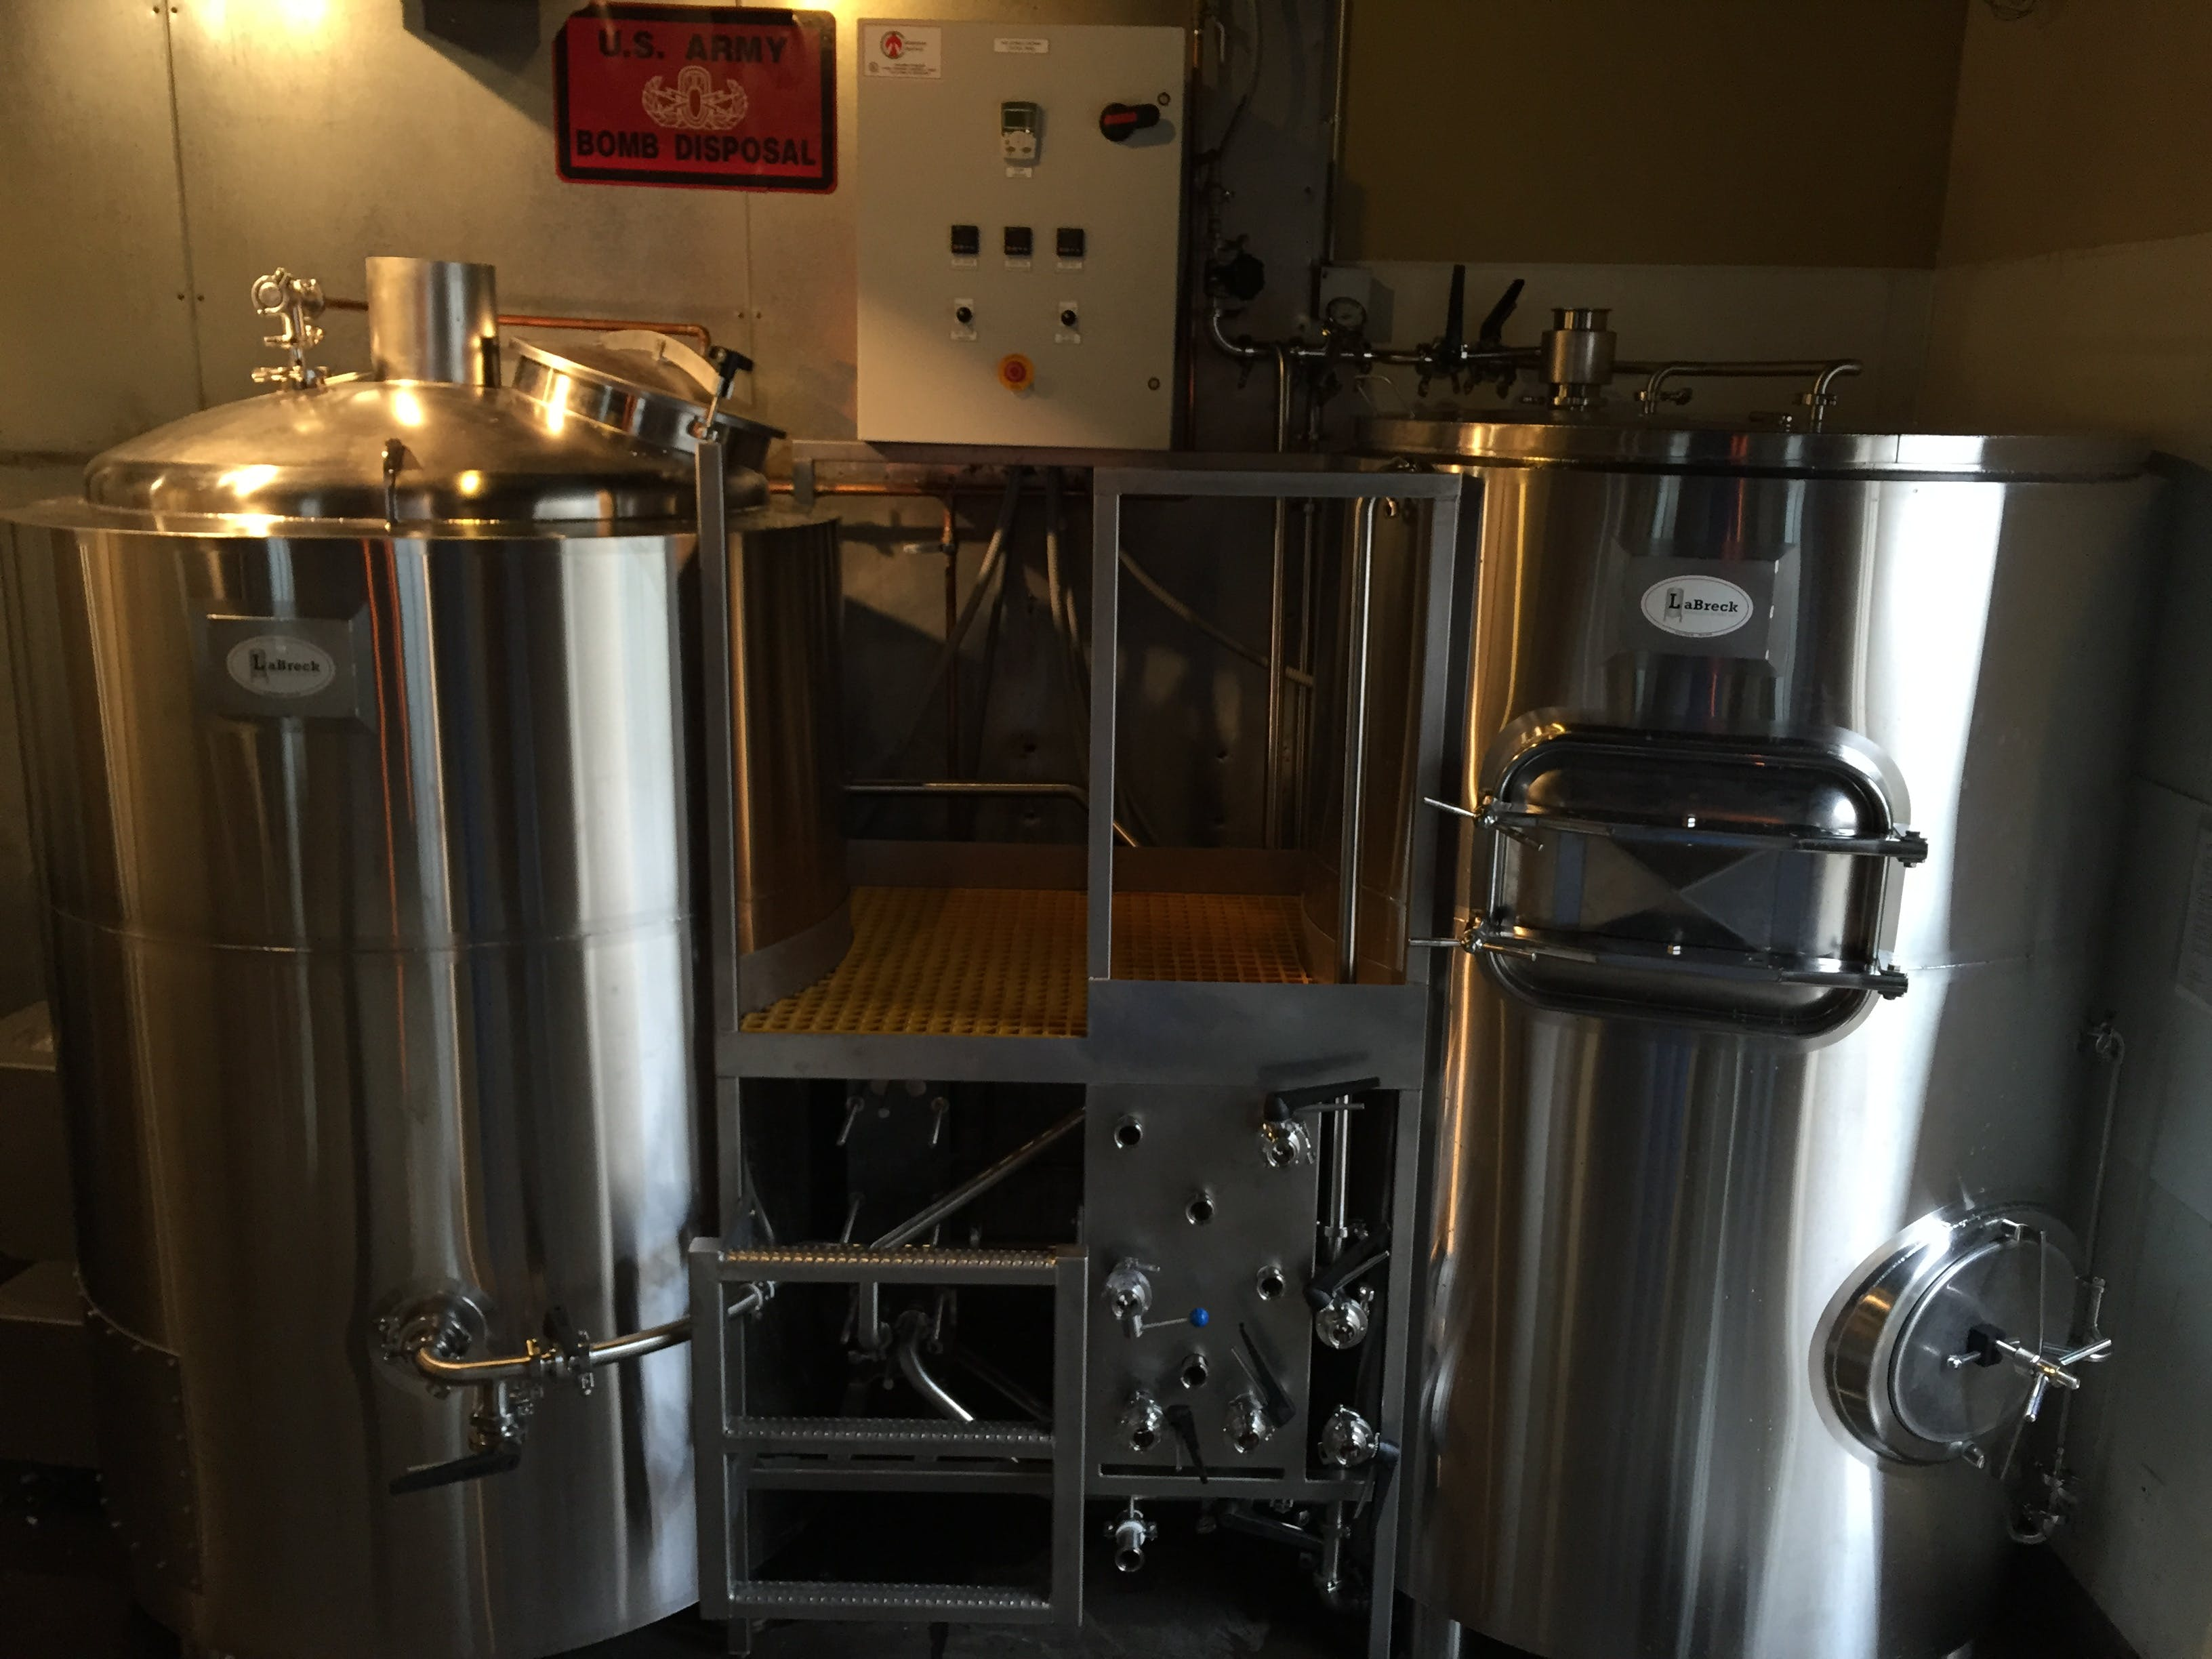 Brewhouse Brewhouse sold by LaBreck Stainless Works